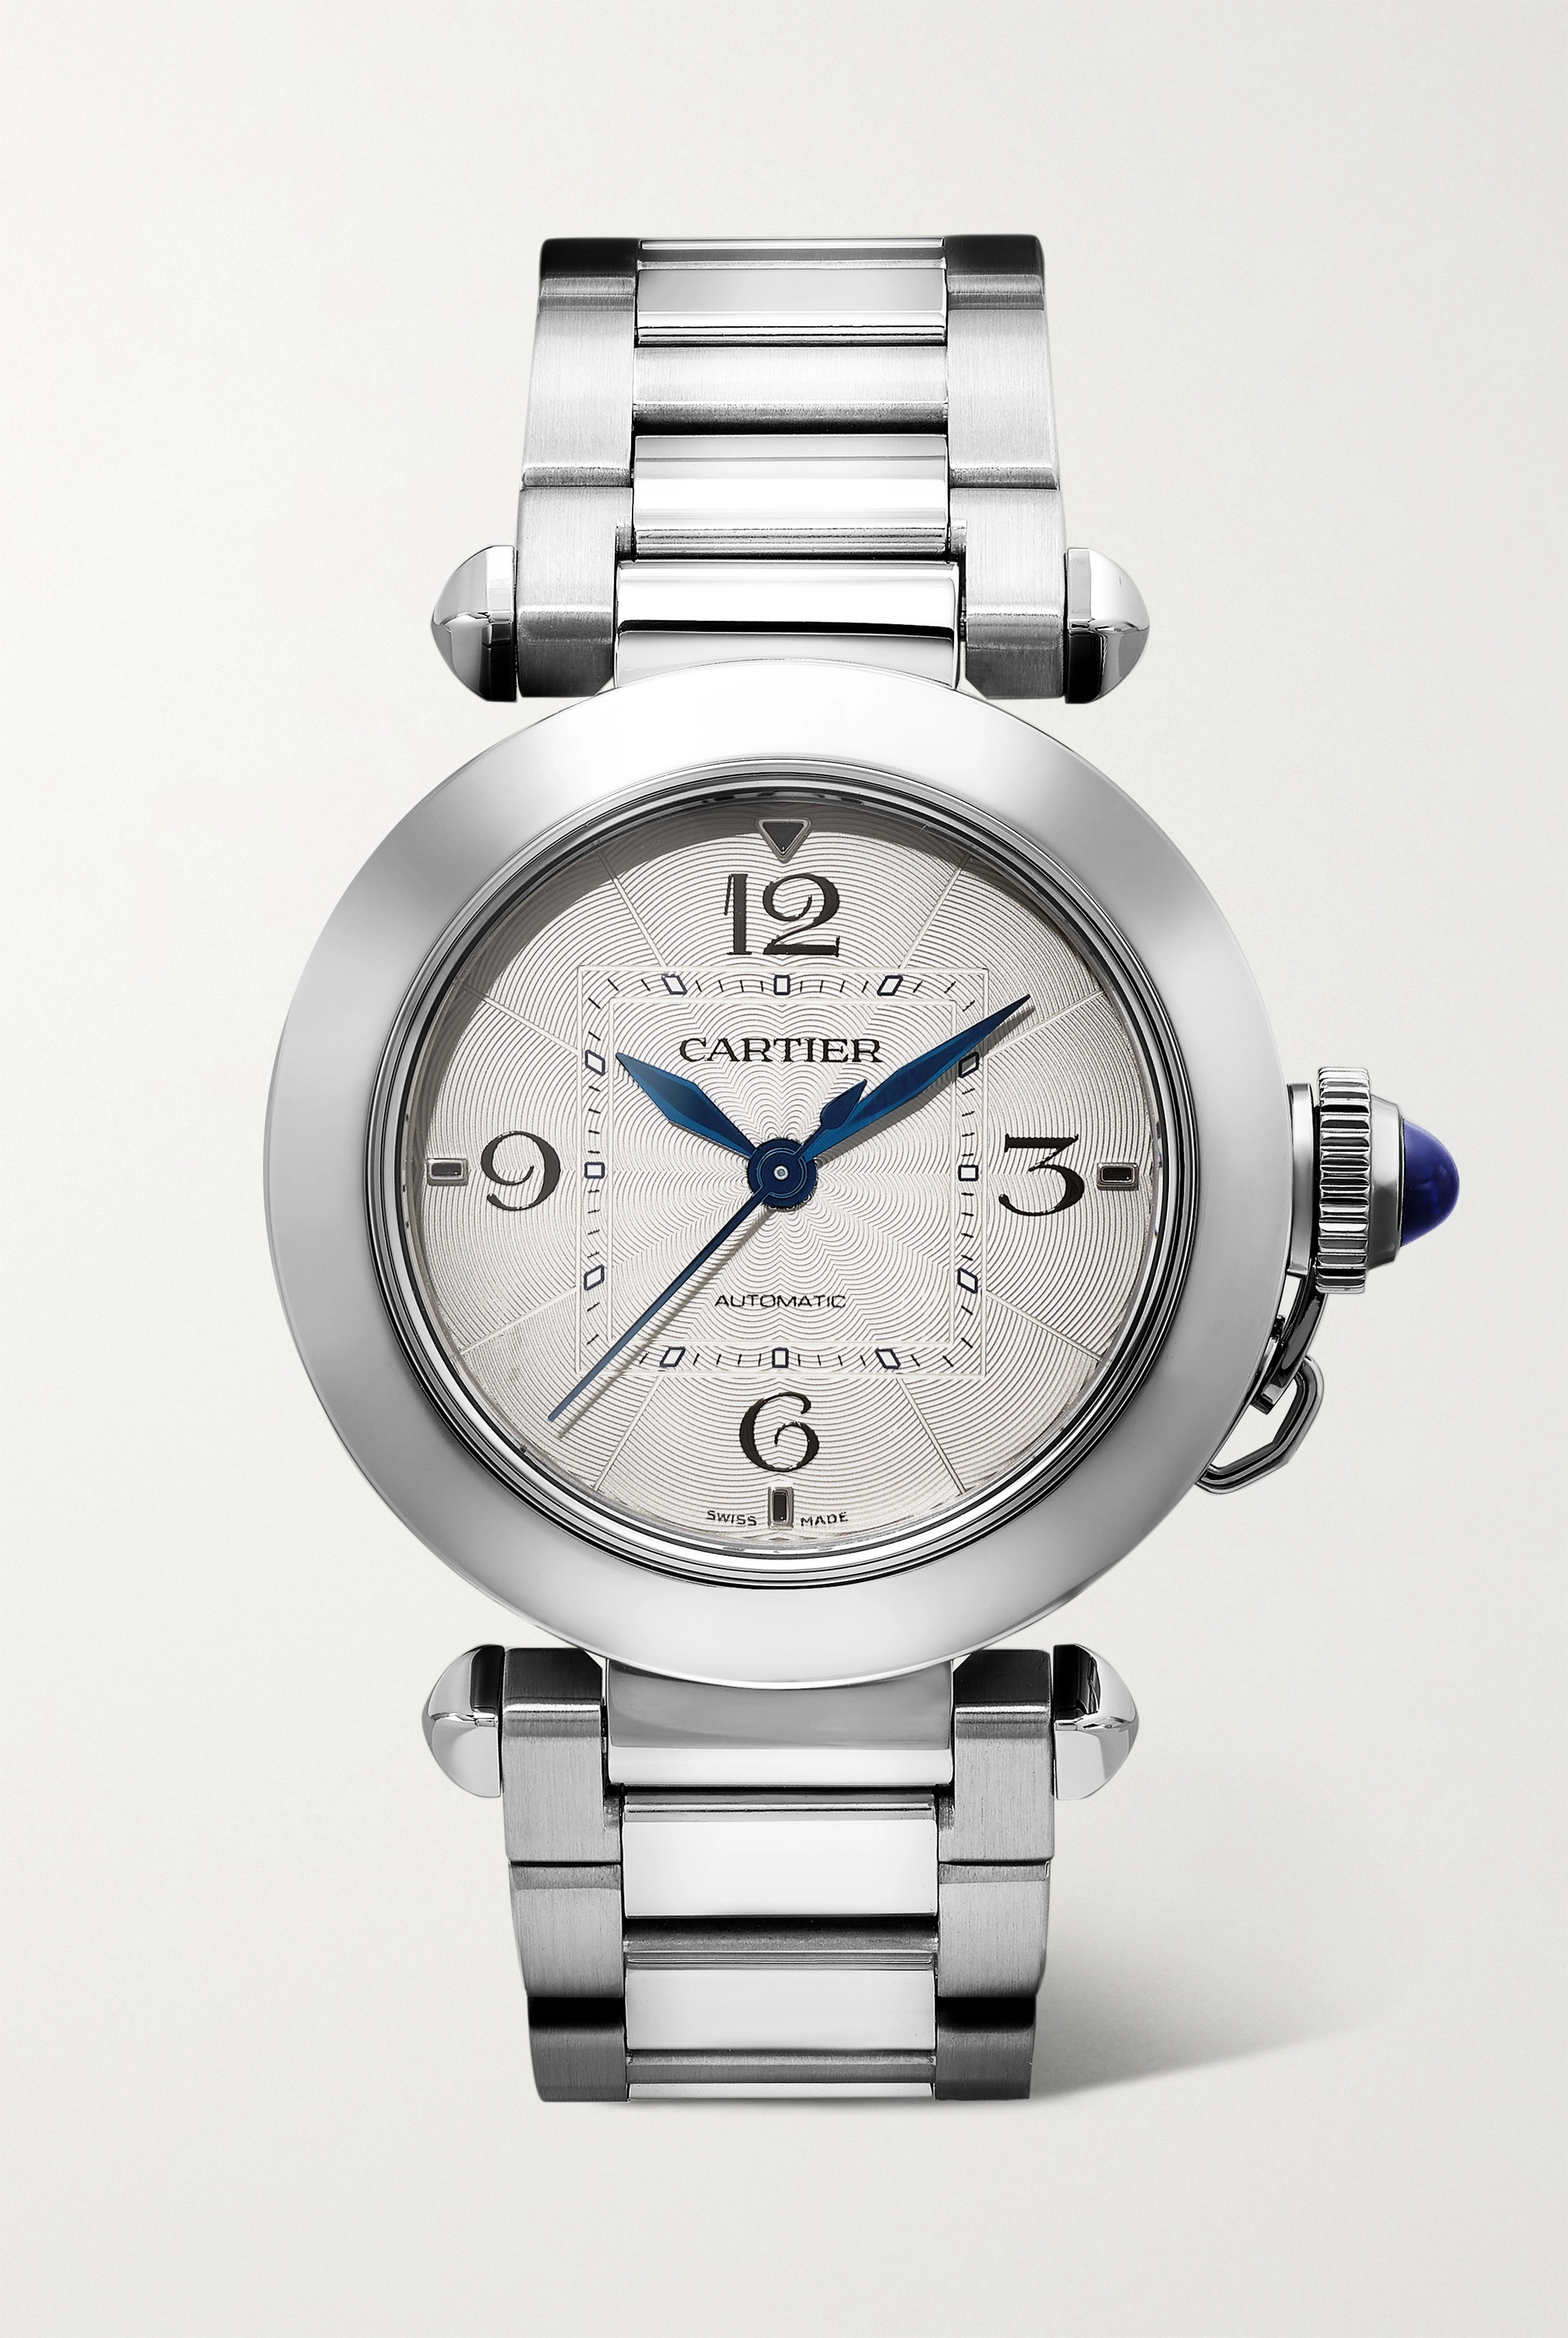 Cartier Pasha de Cartier Automatic 35mm stainless steel watch